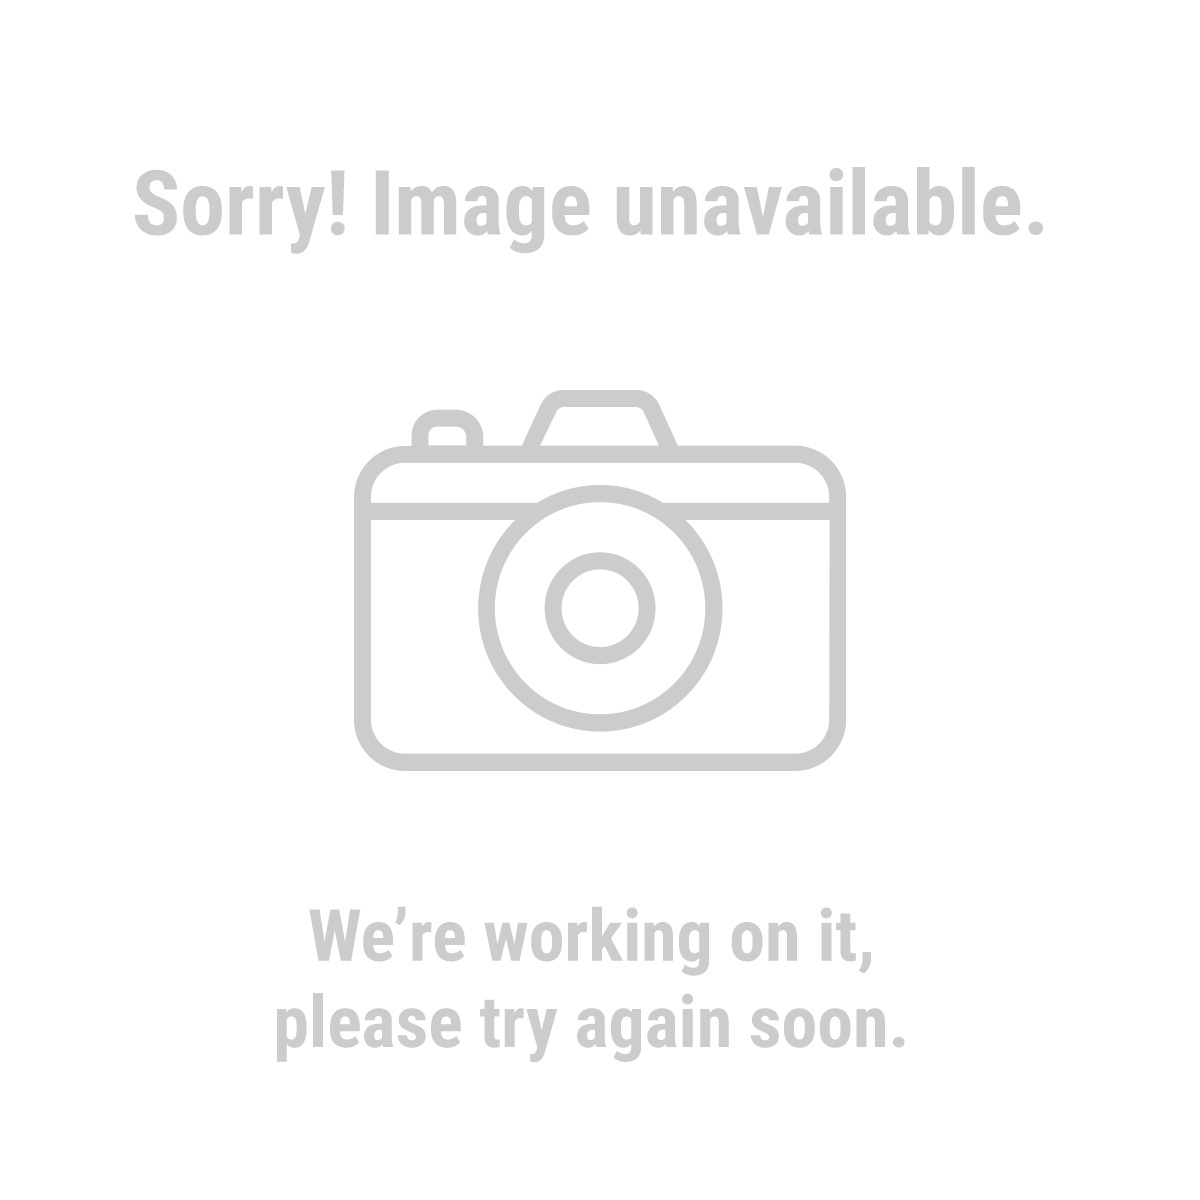 Pittsburgh Automotive 4065 Ball Joint Service Kit for 2WD and 4WD Vehicles